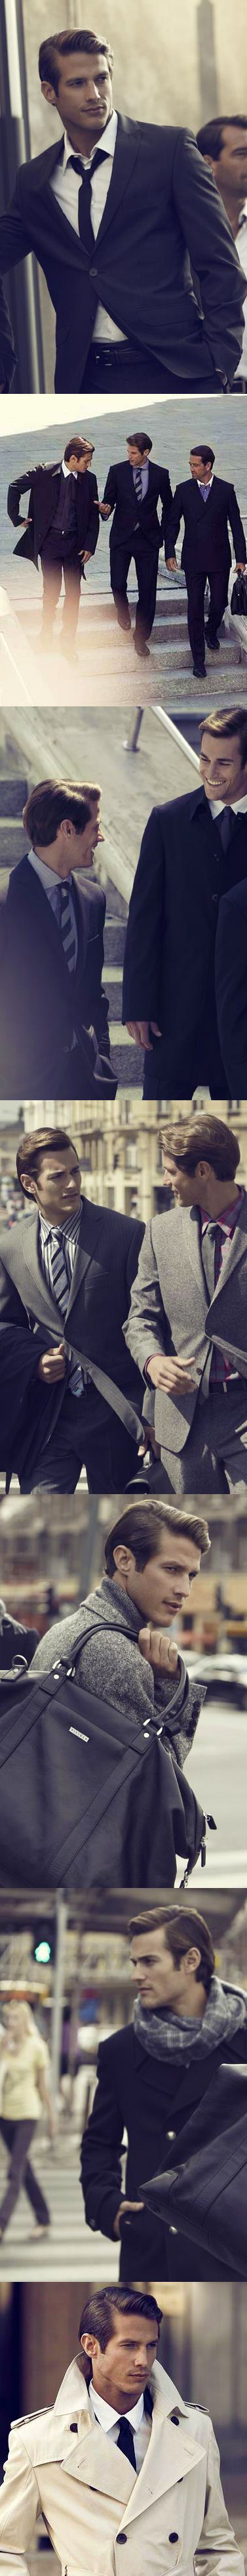 Pin by basil andres on menus style fashion pinterest man style